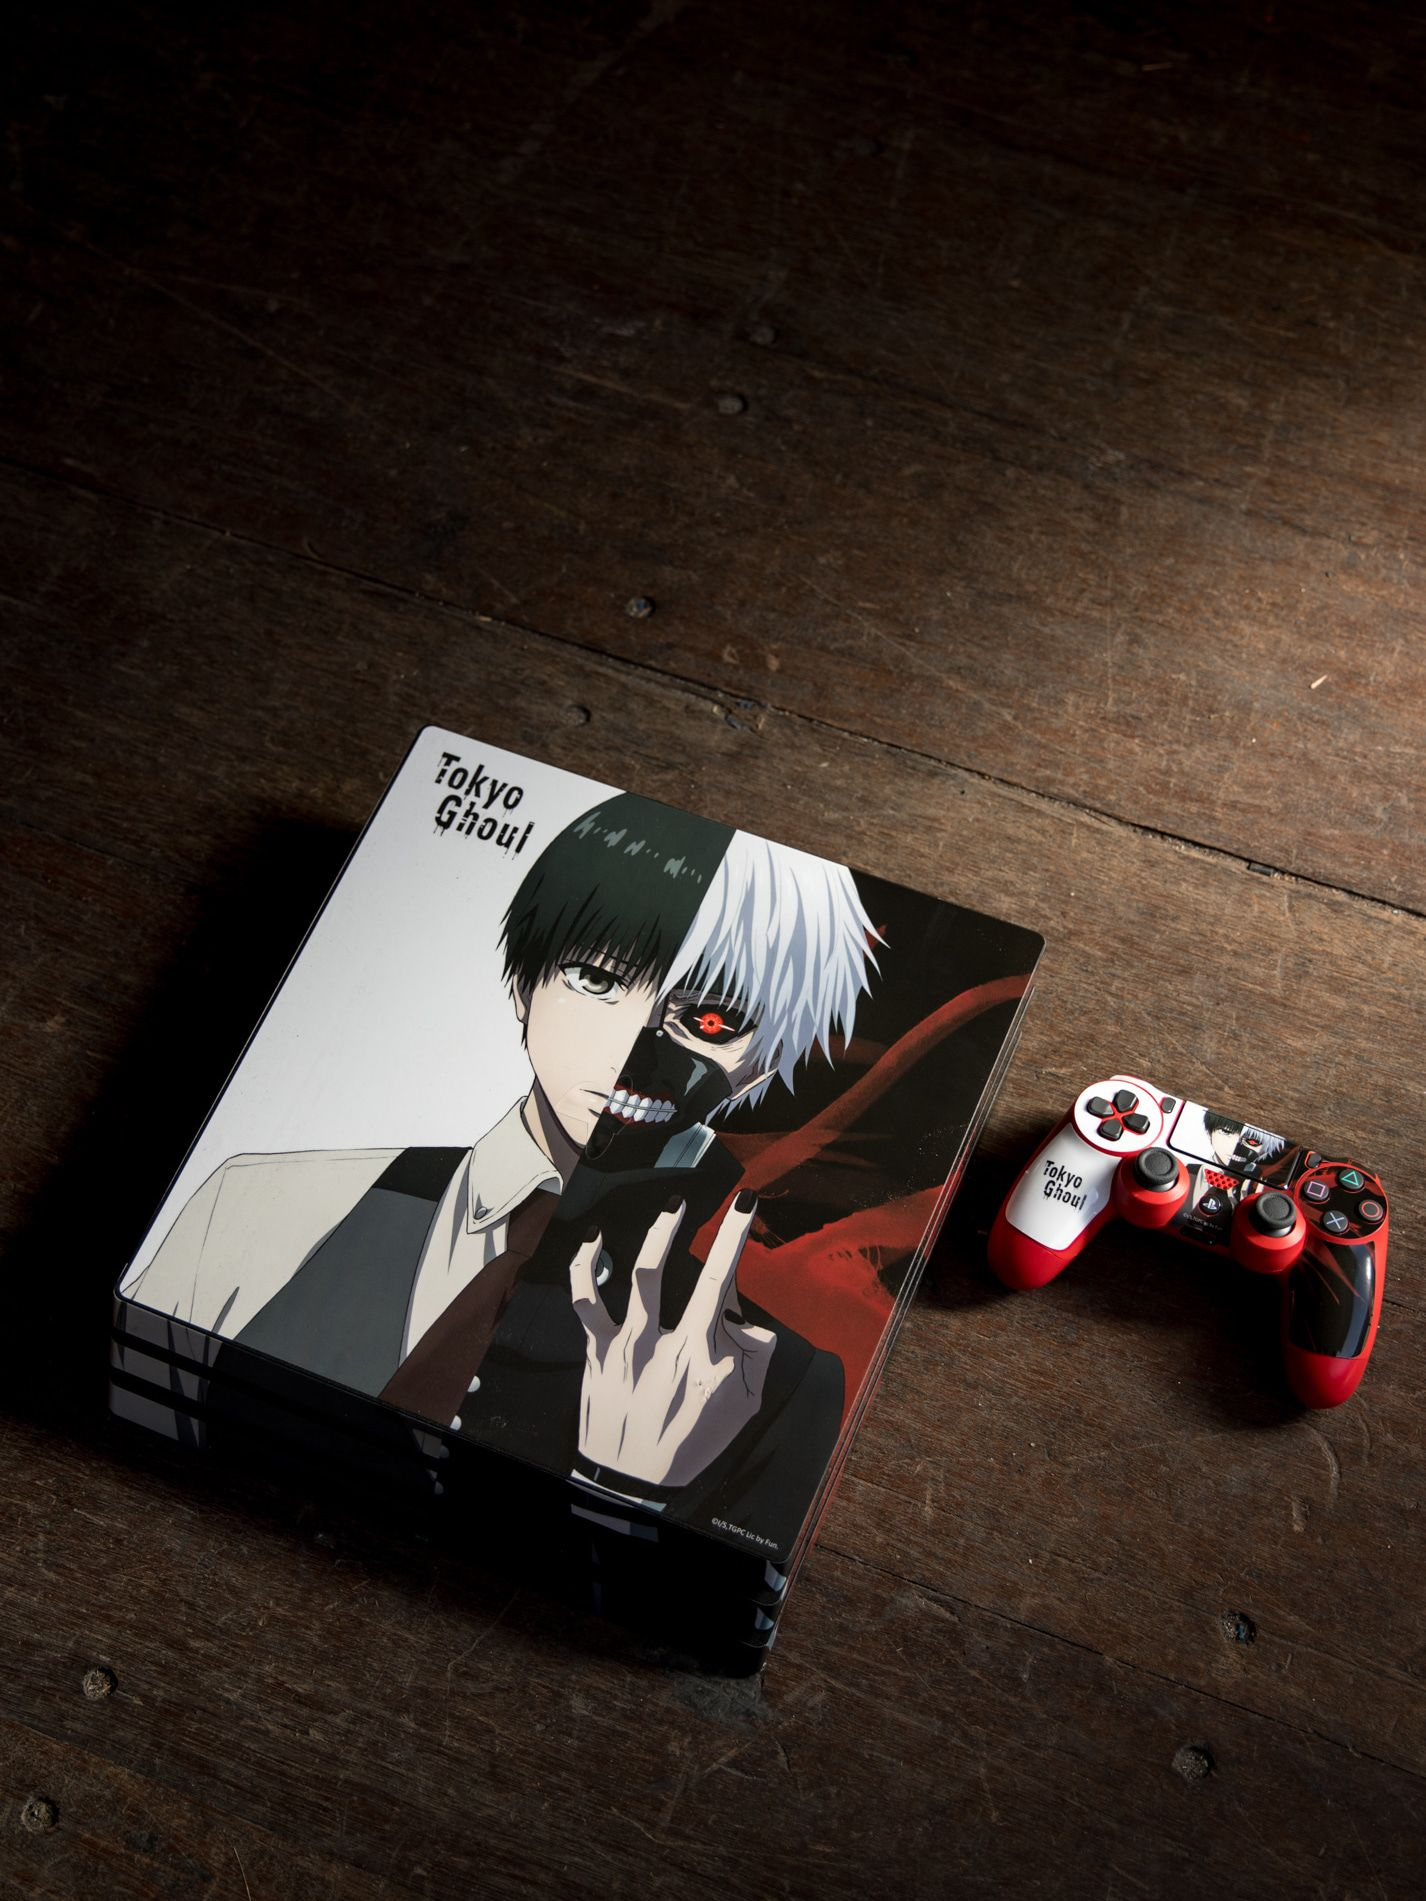 Tokyo Ghoul Ps4 Pro Skins By Skinit Explore Tokyo Ghoul